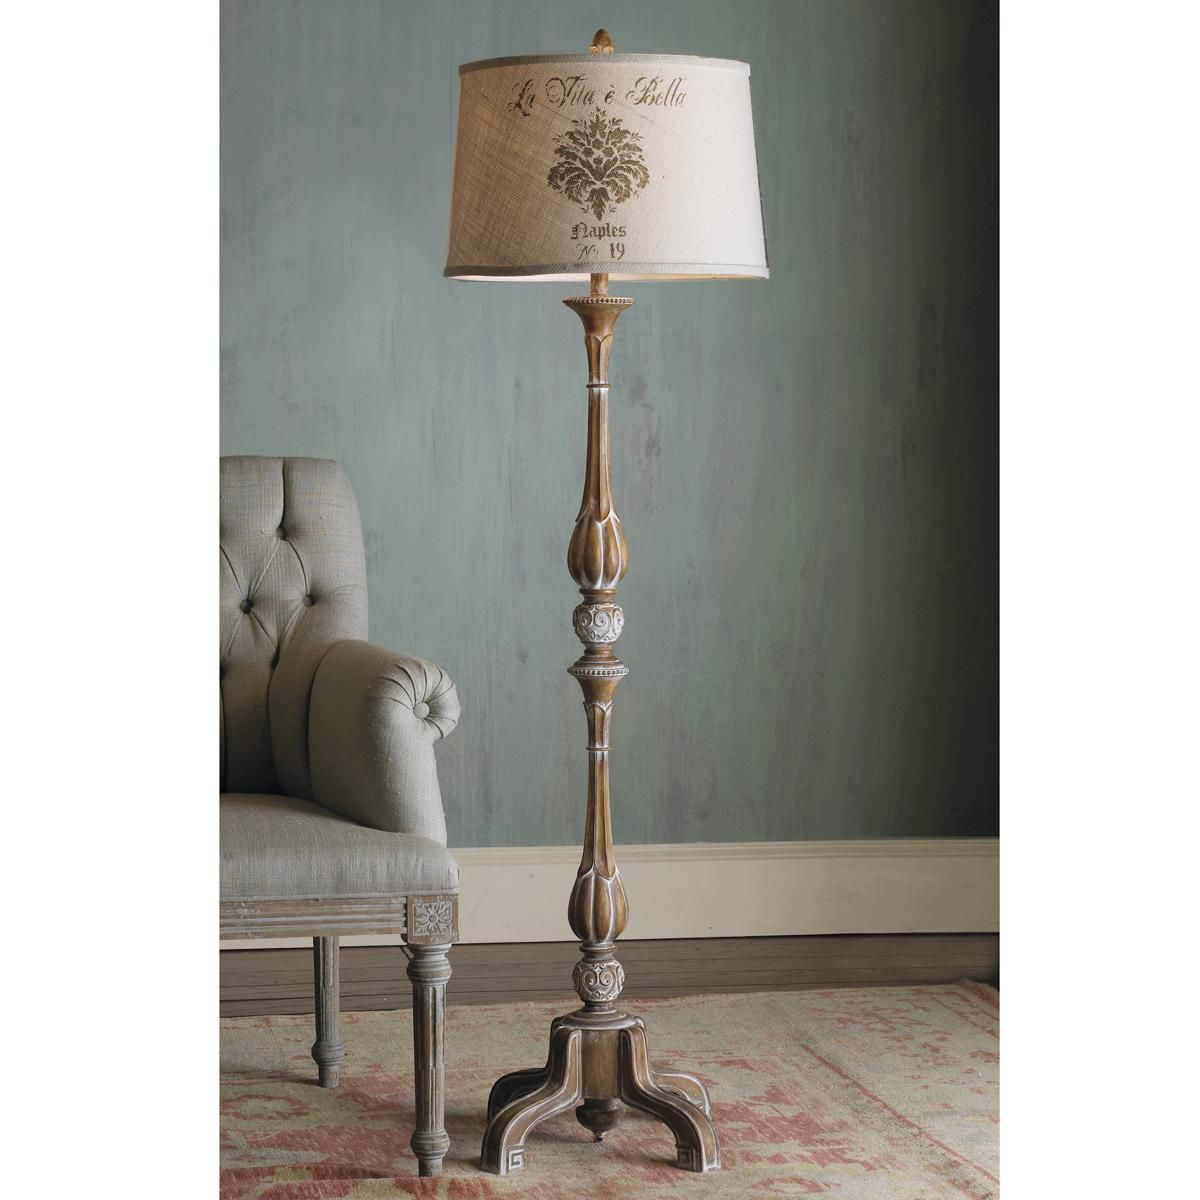 Superieur Floor Lamp That Introduces French Stylization Into The House. Its Post  Includes Some Decorative Carvings And The Bottom Area Features A Stable  Base With ...